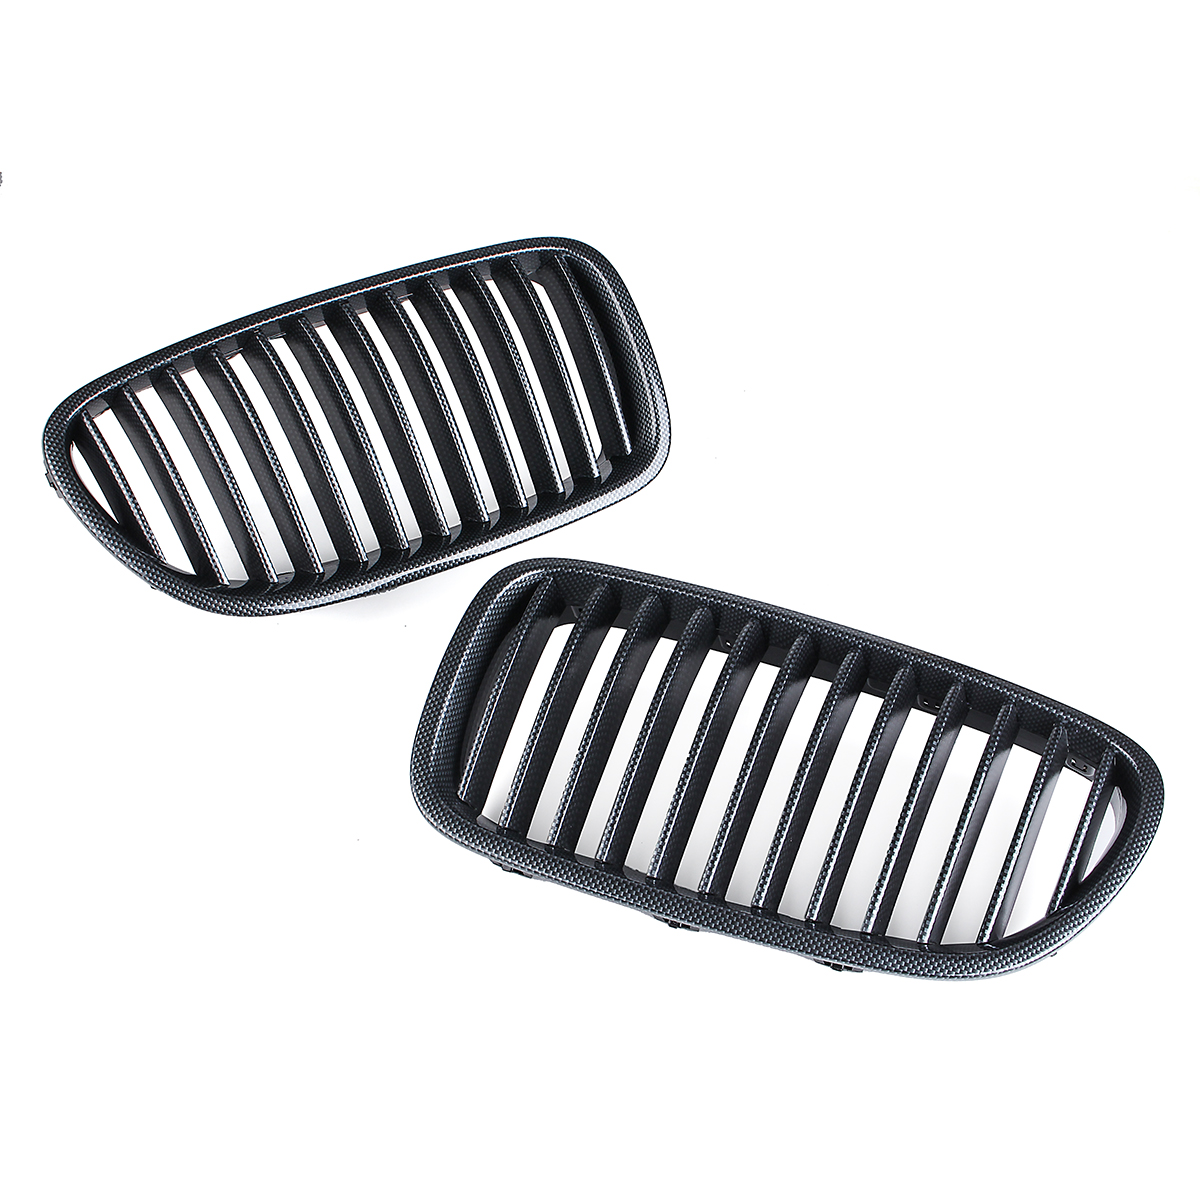 New Pair Carbon Fiber Abs Front Kidney Grille For Bmw F18